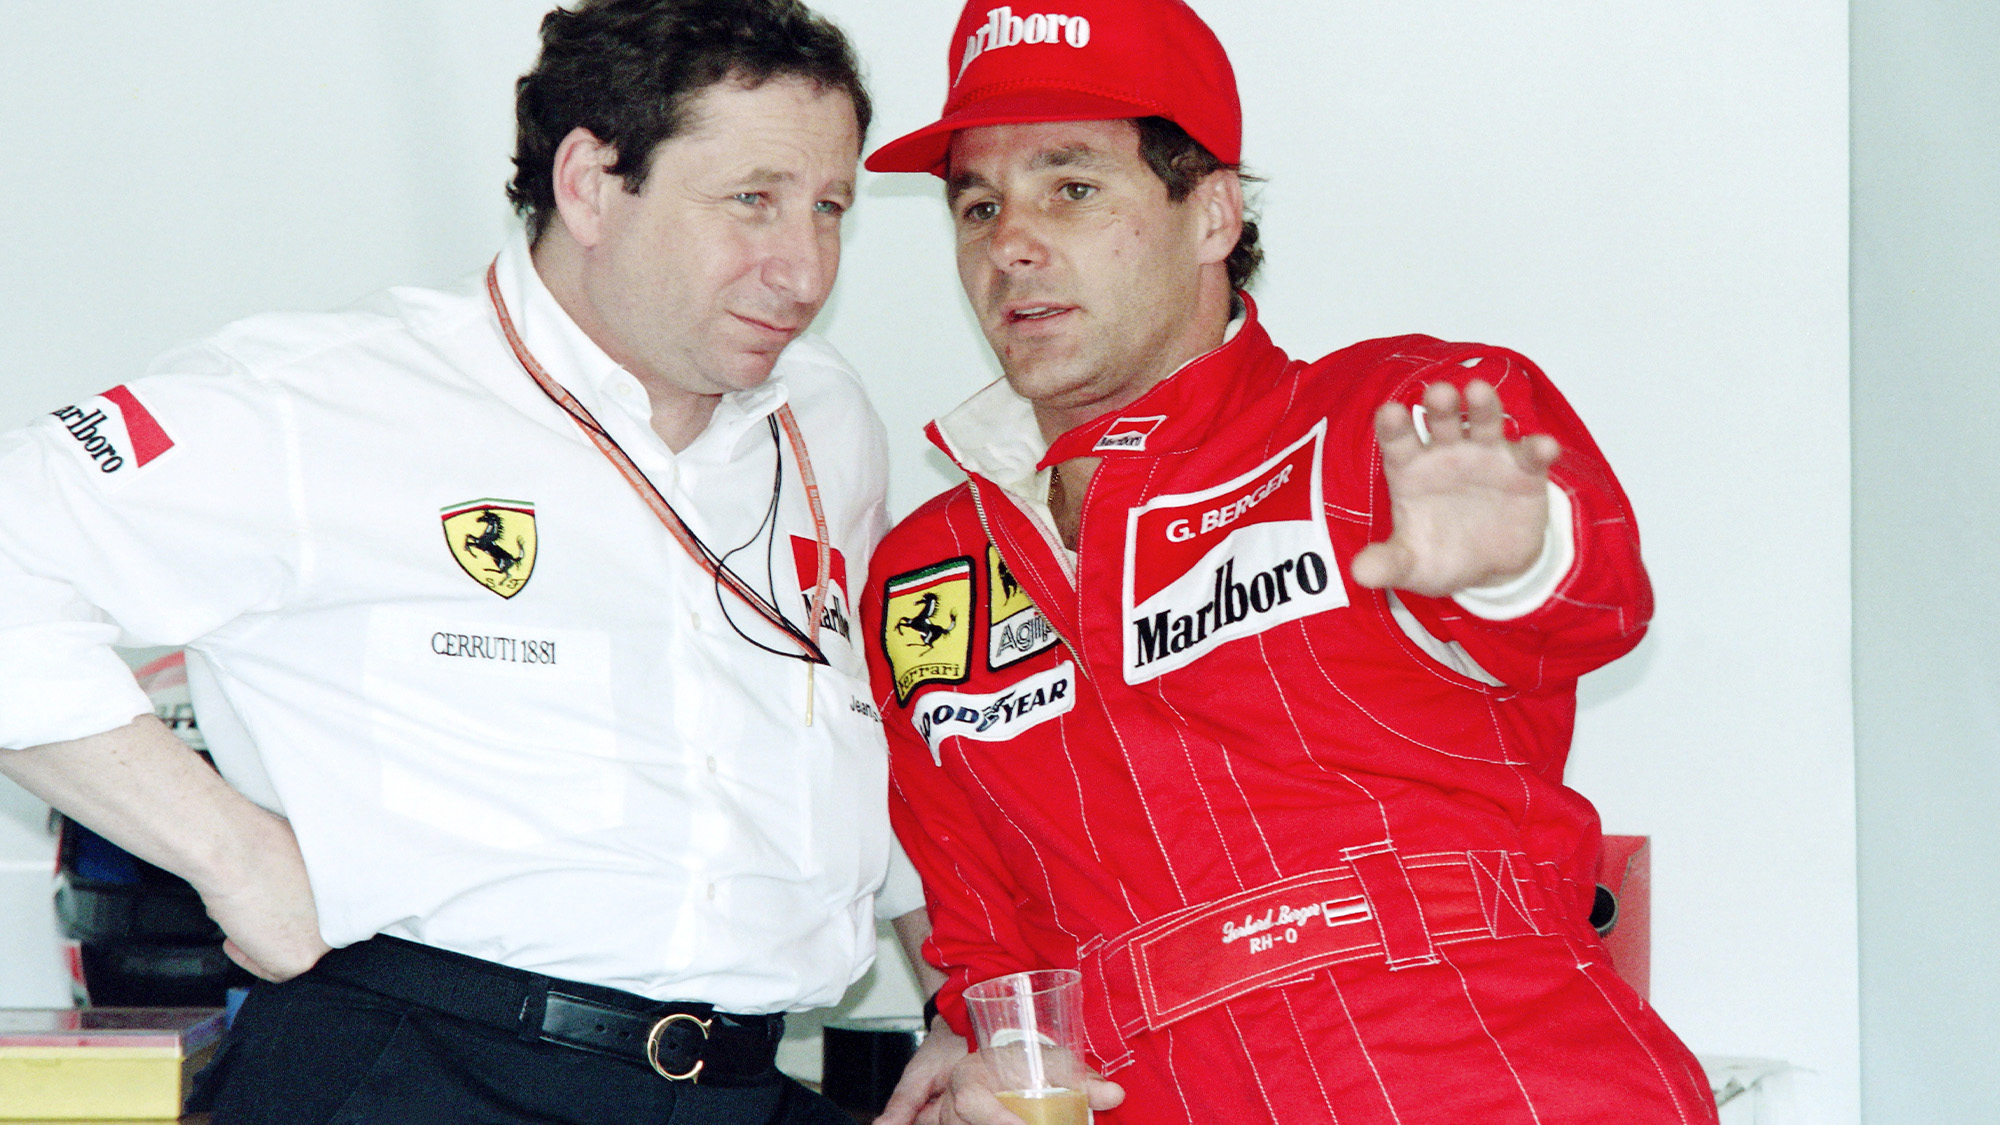 Gerhard Berger with Jean Todt at Ferrari in 1994